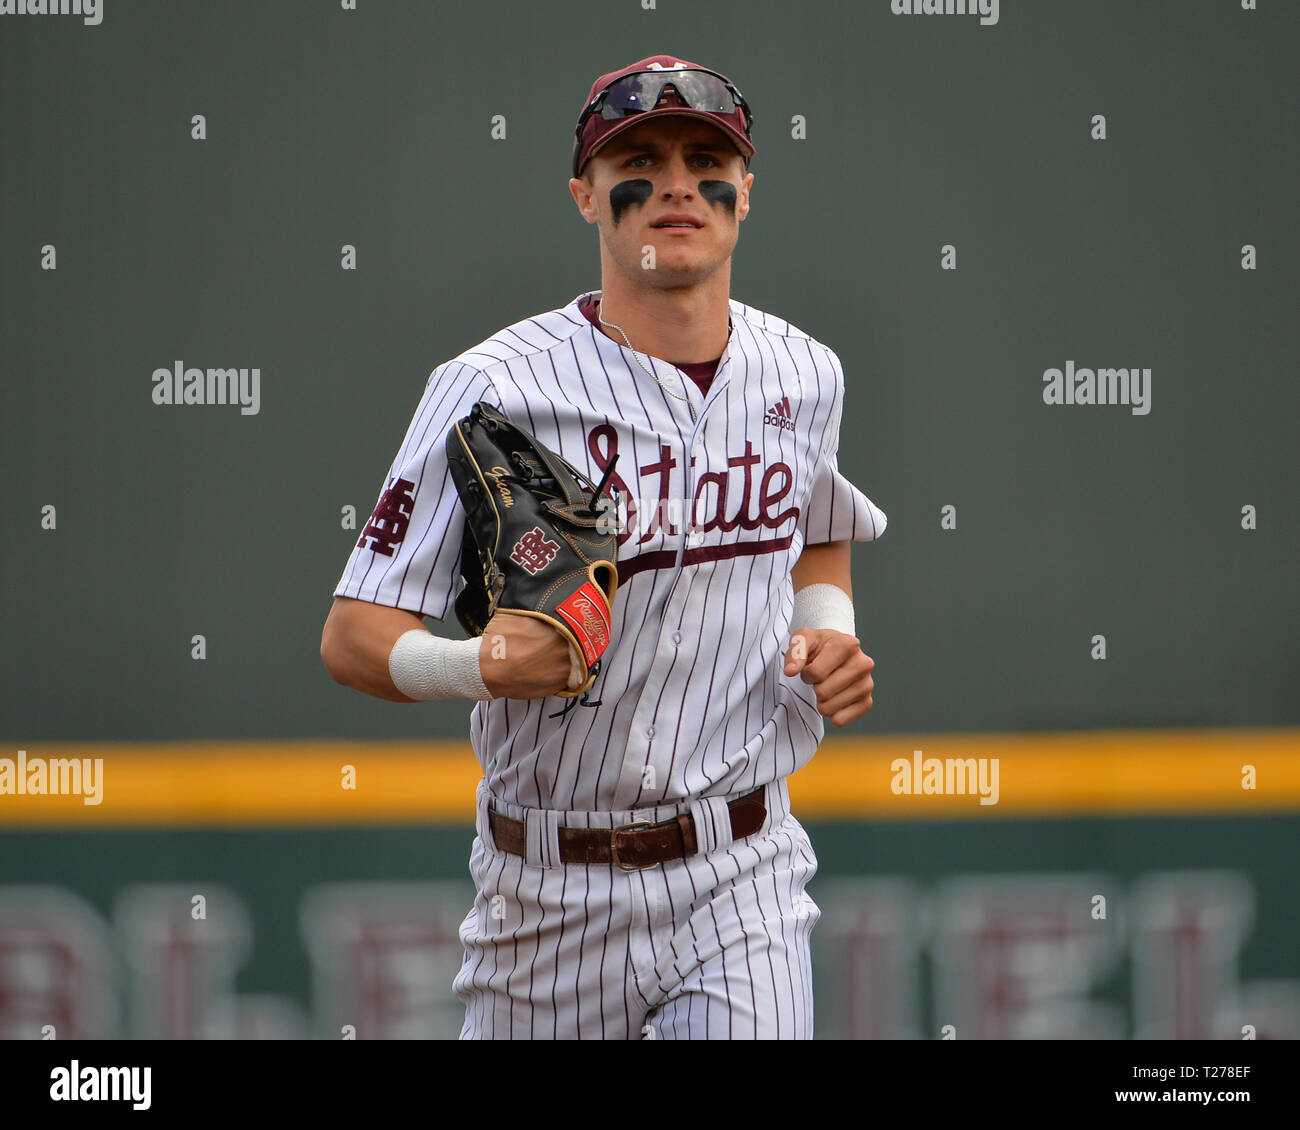 Mississippi, USA.  30th Mar, 2019. Mississippi State outfielder, Jake Mangum (15), during the NCAA baseball game between the LSU Tigers and the Mississippi State Bulldogs at Dudy Noble Field in Starkville, MS. LSU defeated Mississippi State, 11-2. Kevin Langley/Sports South Media/CSM/Alamy Live News Stock Photo